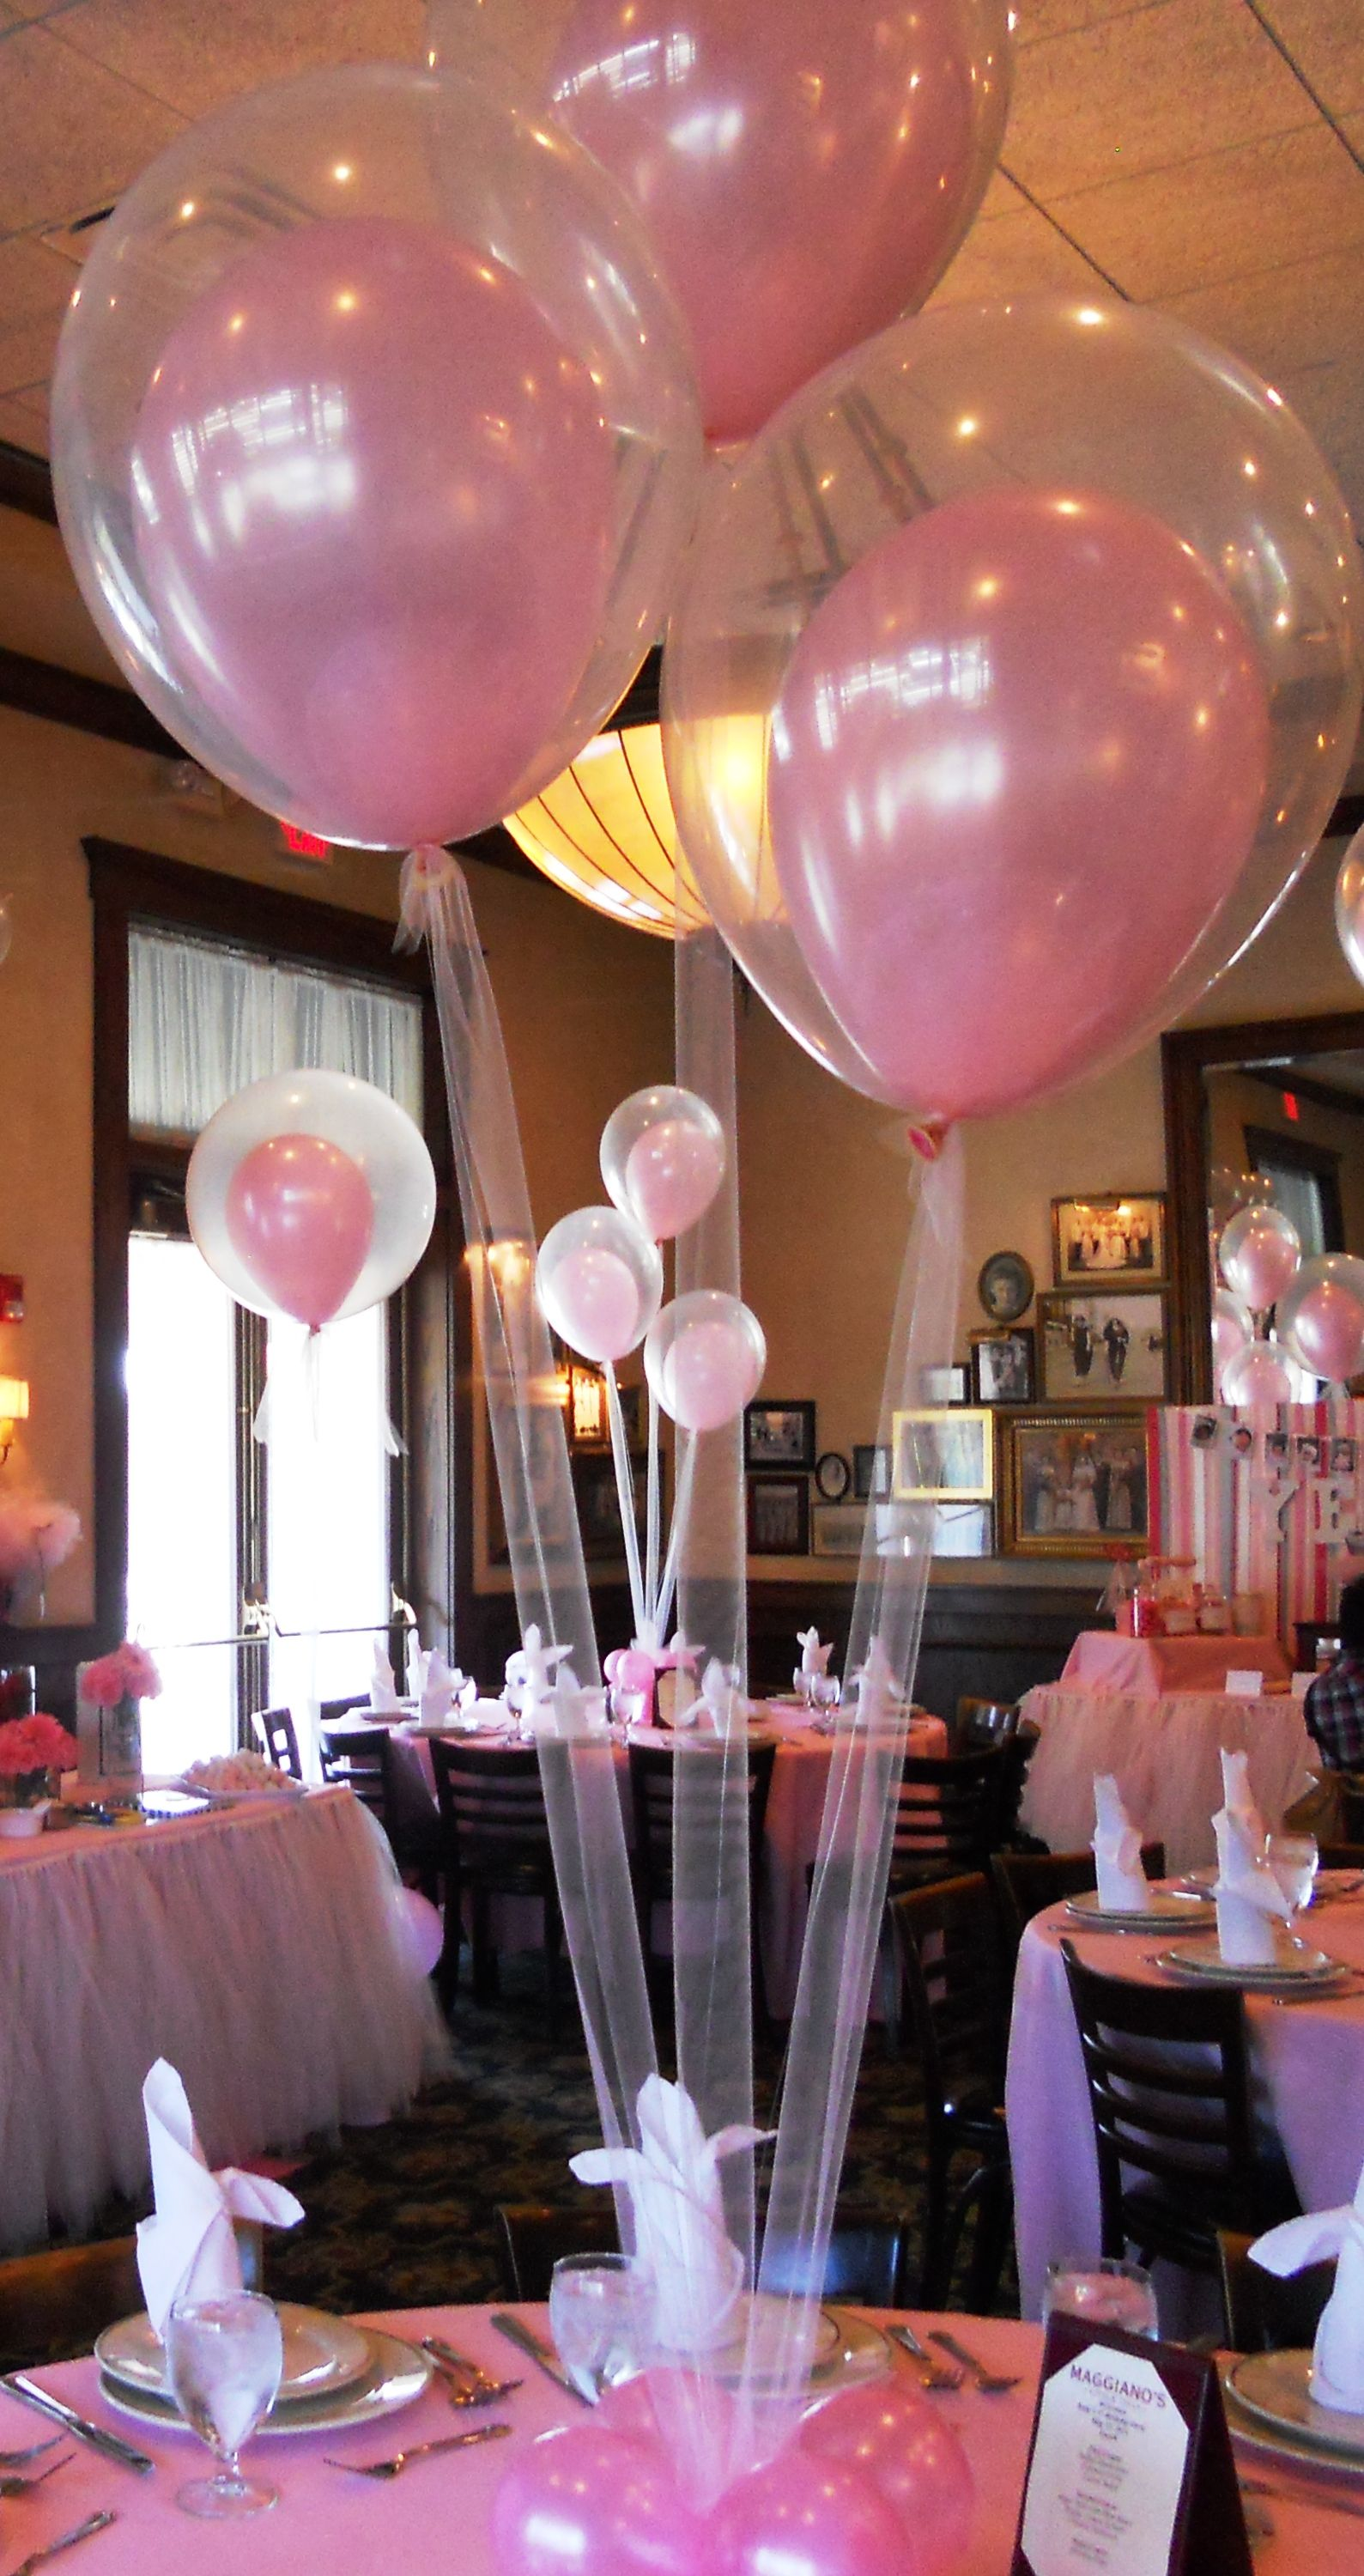 Elegant birthday table decorations - Tulle Instead Of String Brilliant And Pretty